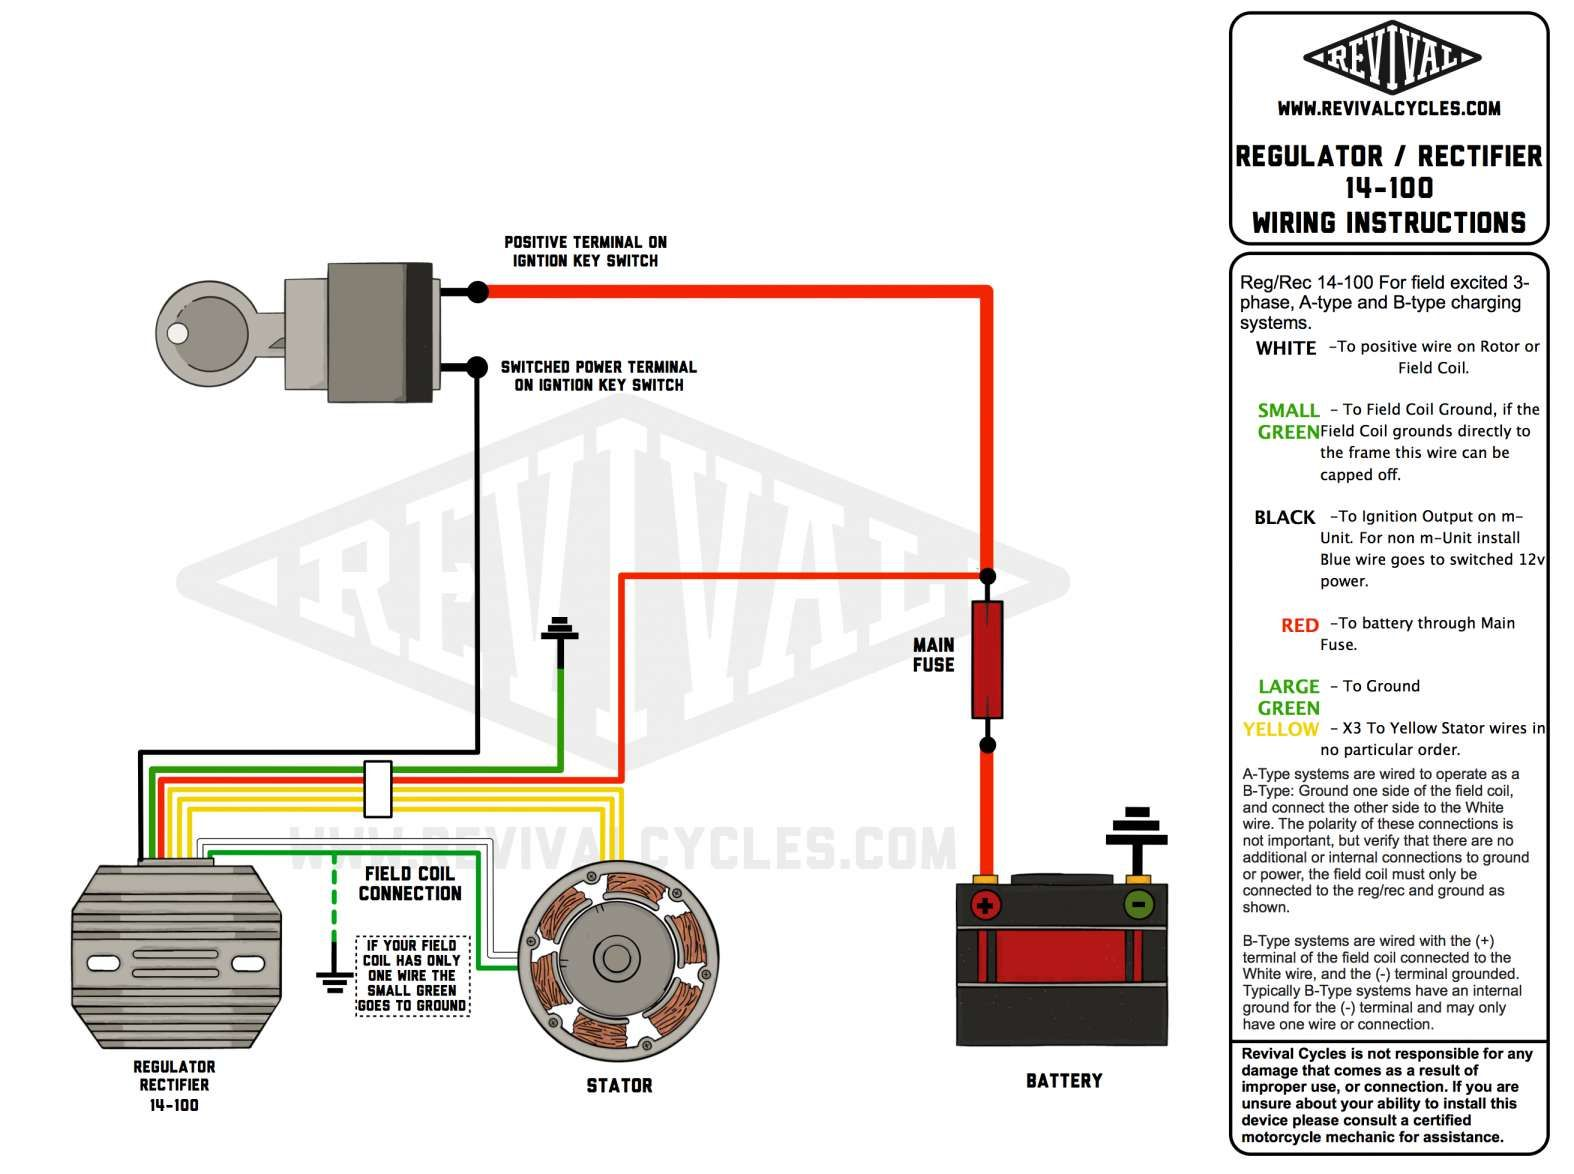 17+ Motorcycle Regulator Wiring Diagram - Motorcycle Diagram - Wiringg.net  in 2020 | Motorcycle wiring, Voltage regulator, Electrical wiring diagramPinterest